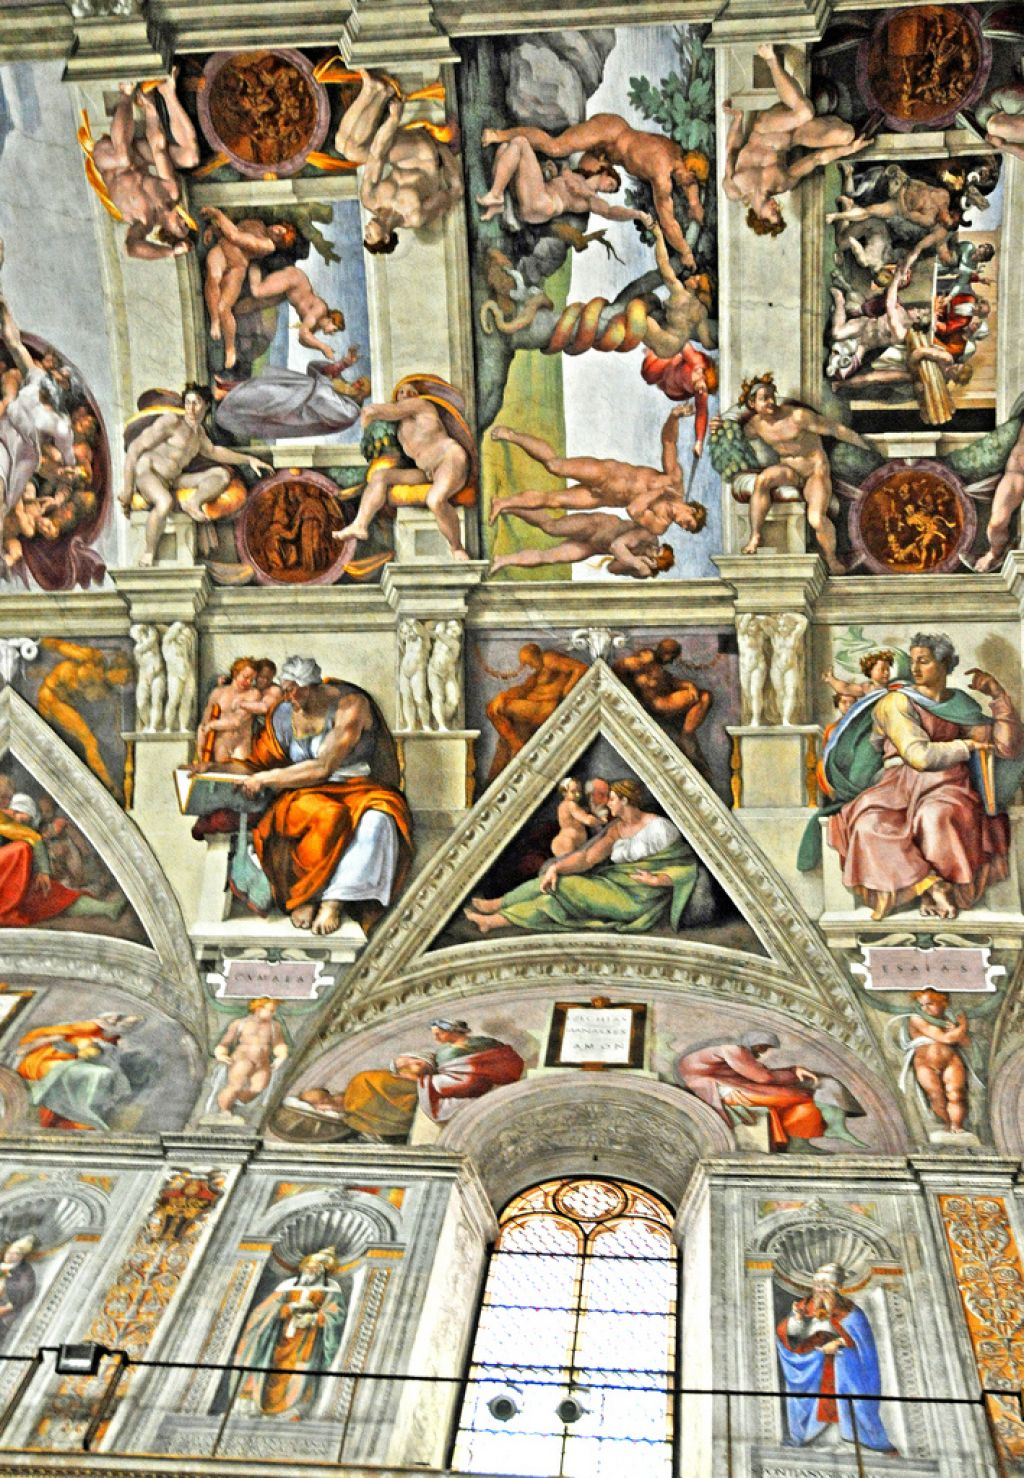 sistine chapel4 Inside the Sistine Chapel